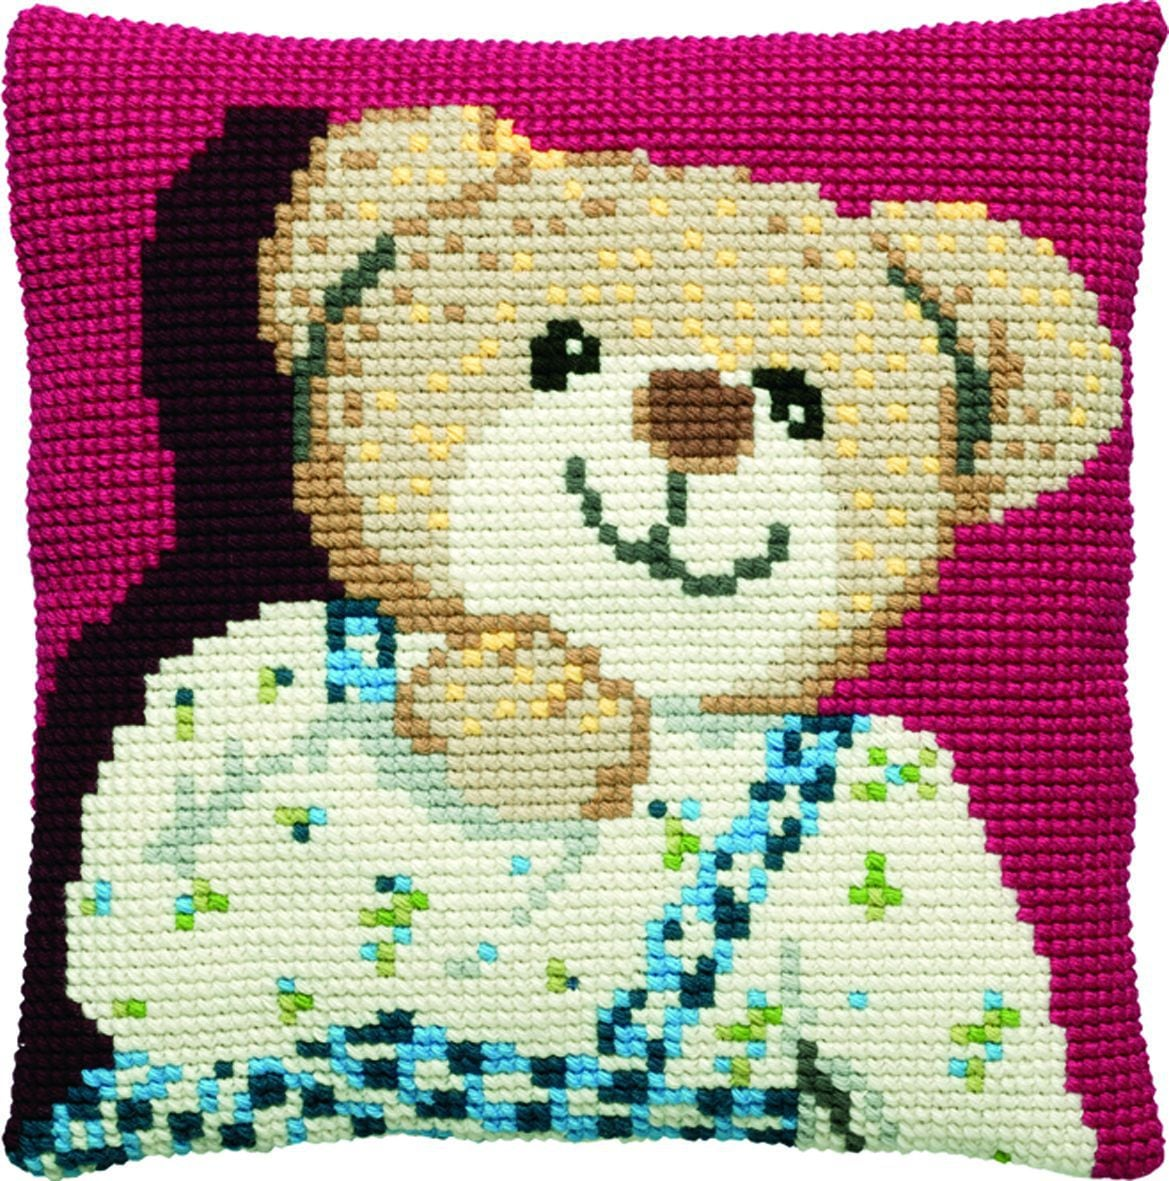 cross stitch cushion teddy boy printed